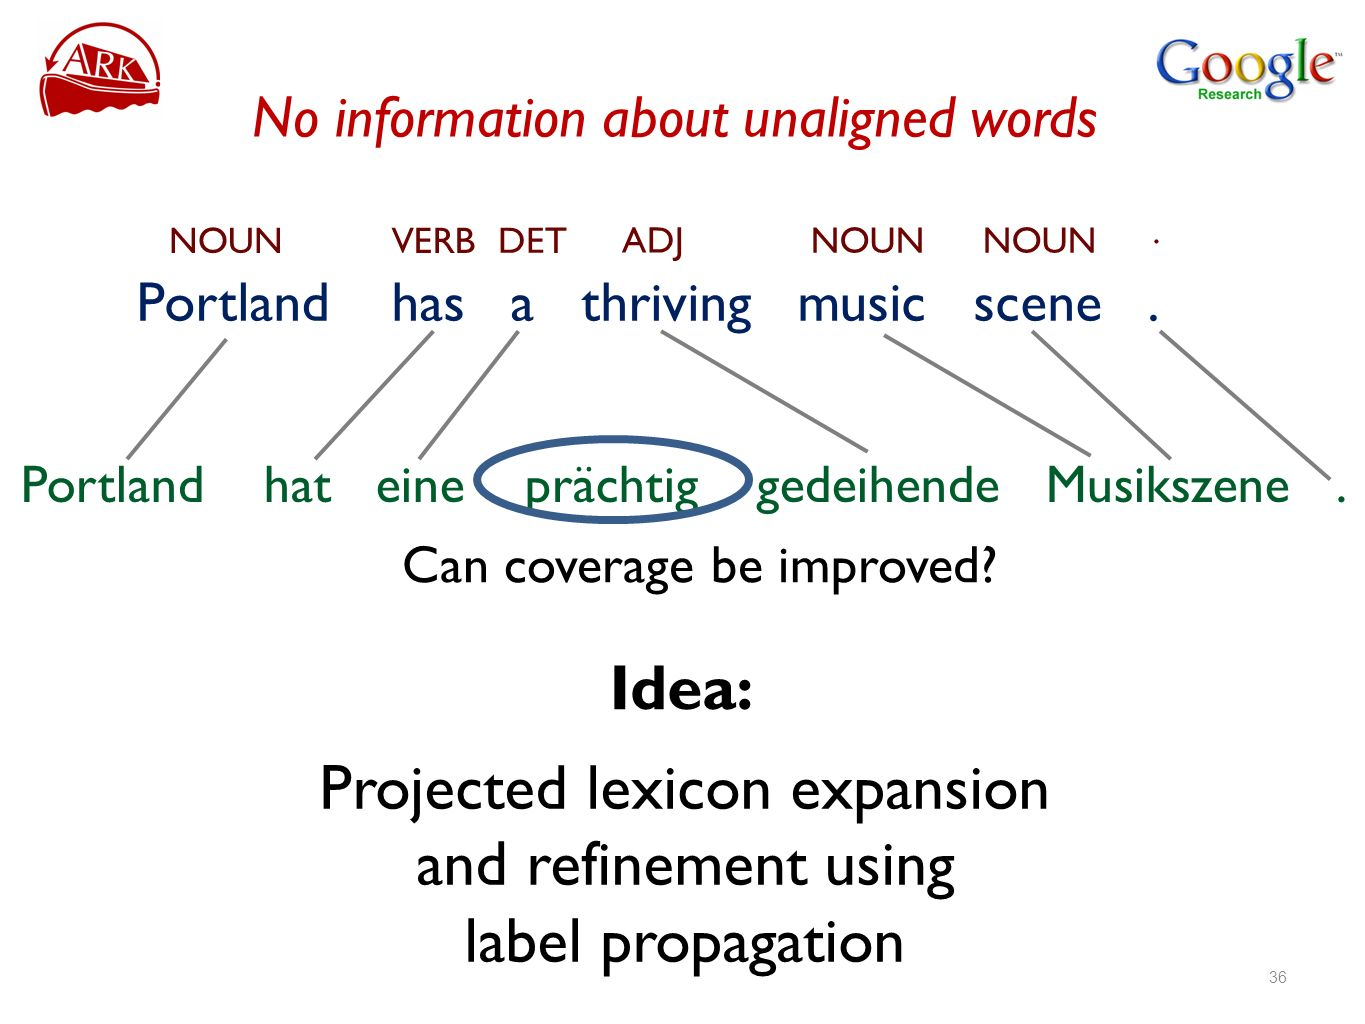 Projected lexicon expansion and refinement using label propagation